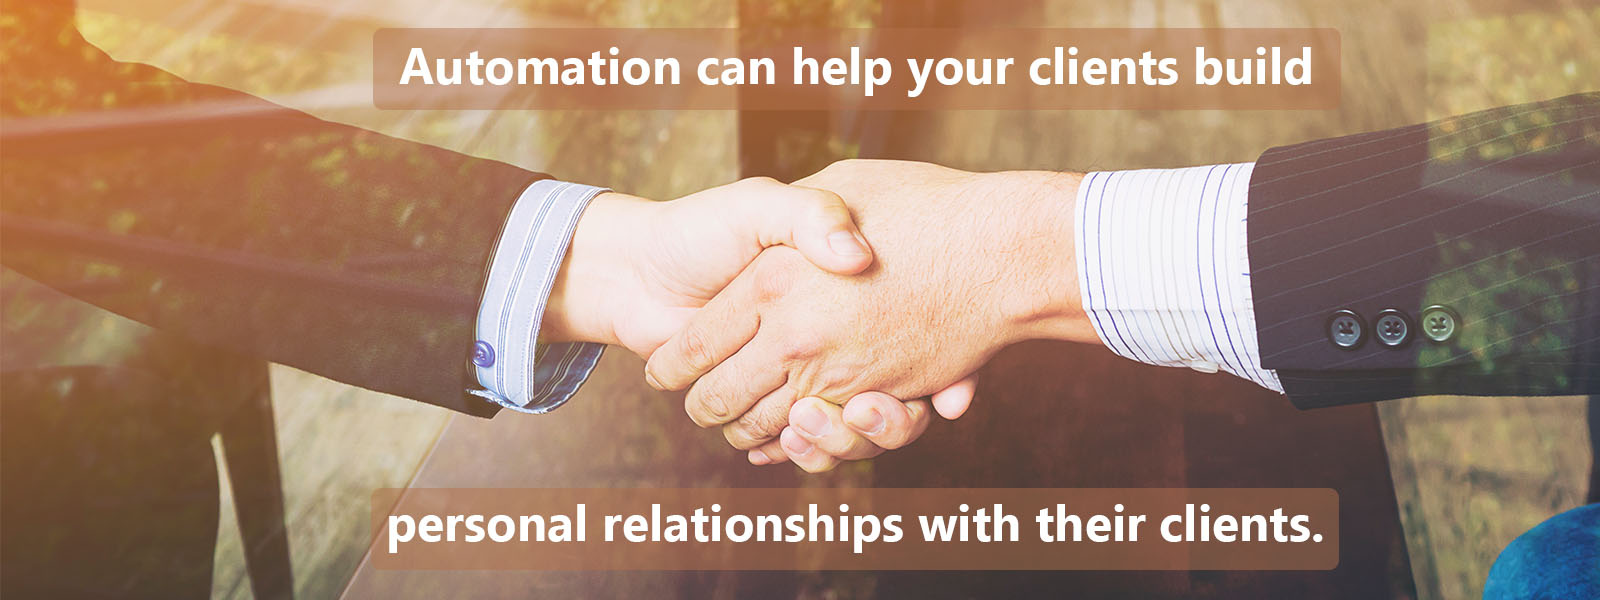 automation can help your clients build relationships with their clients